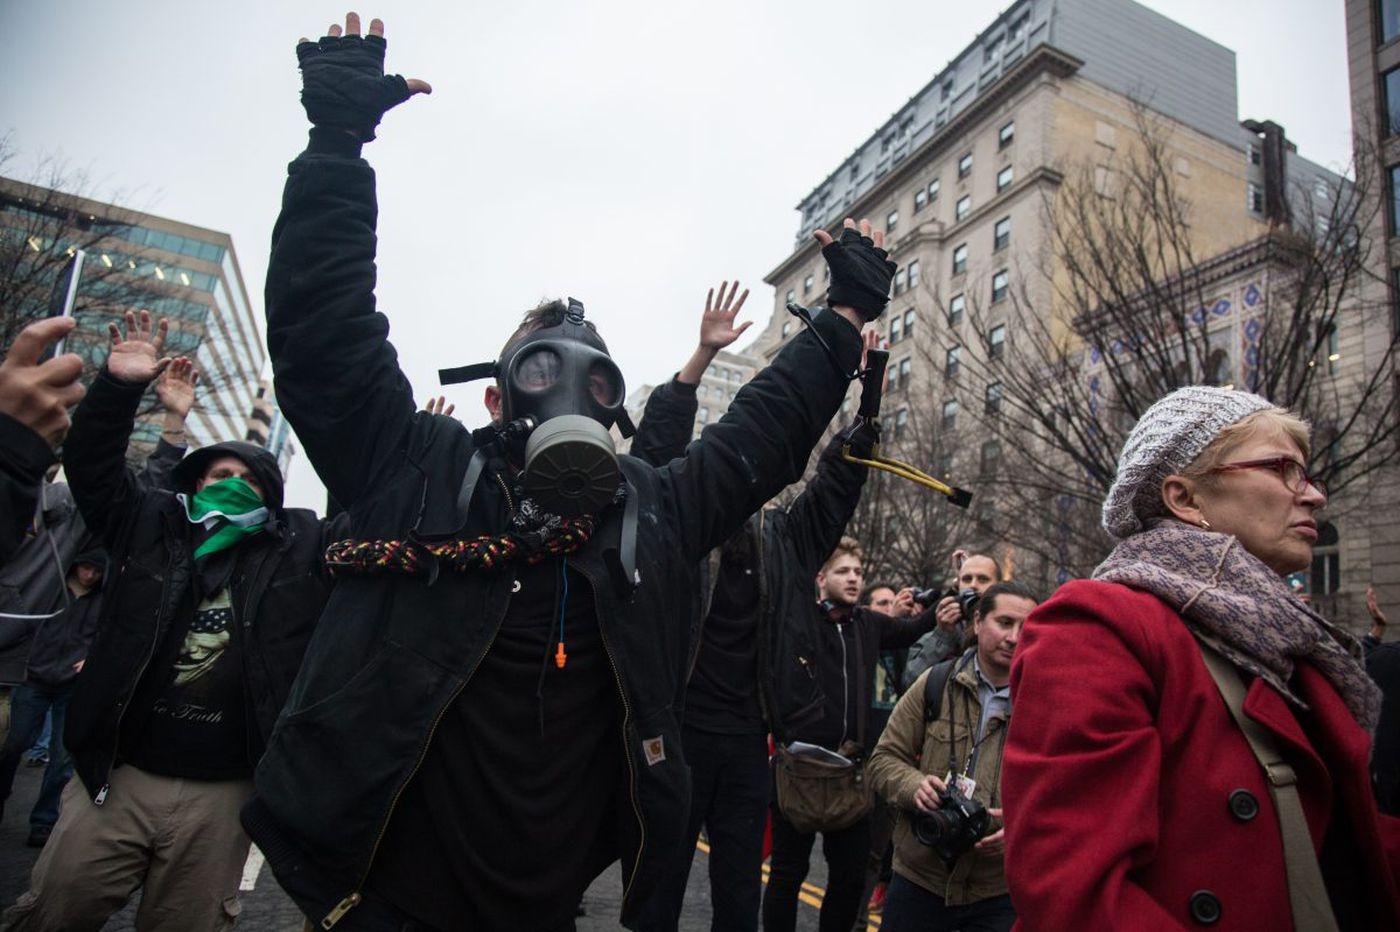 Their Trump inauguration protest turned violent. Two from Philly could be first sent to prison for it